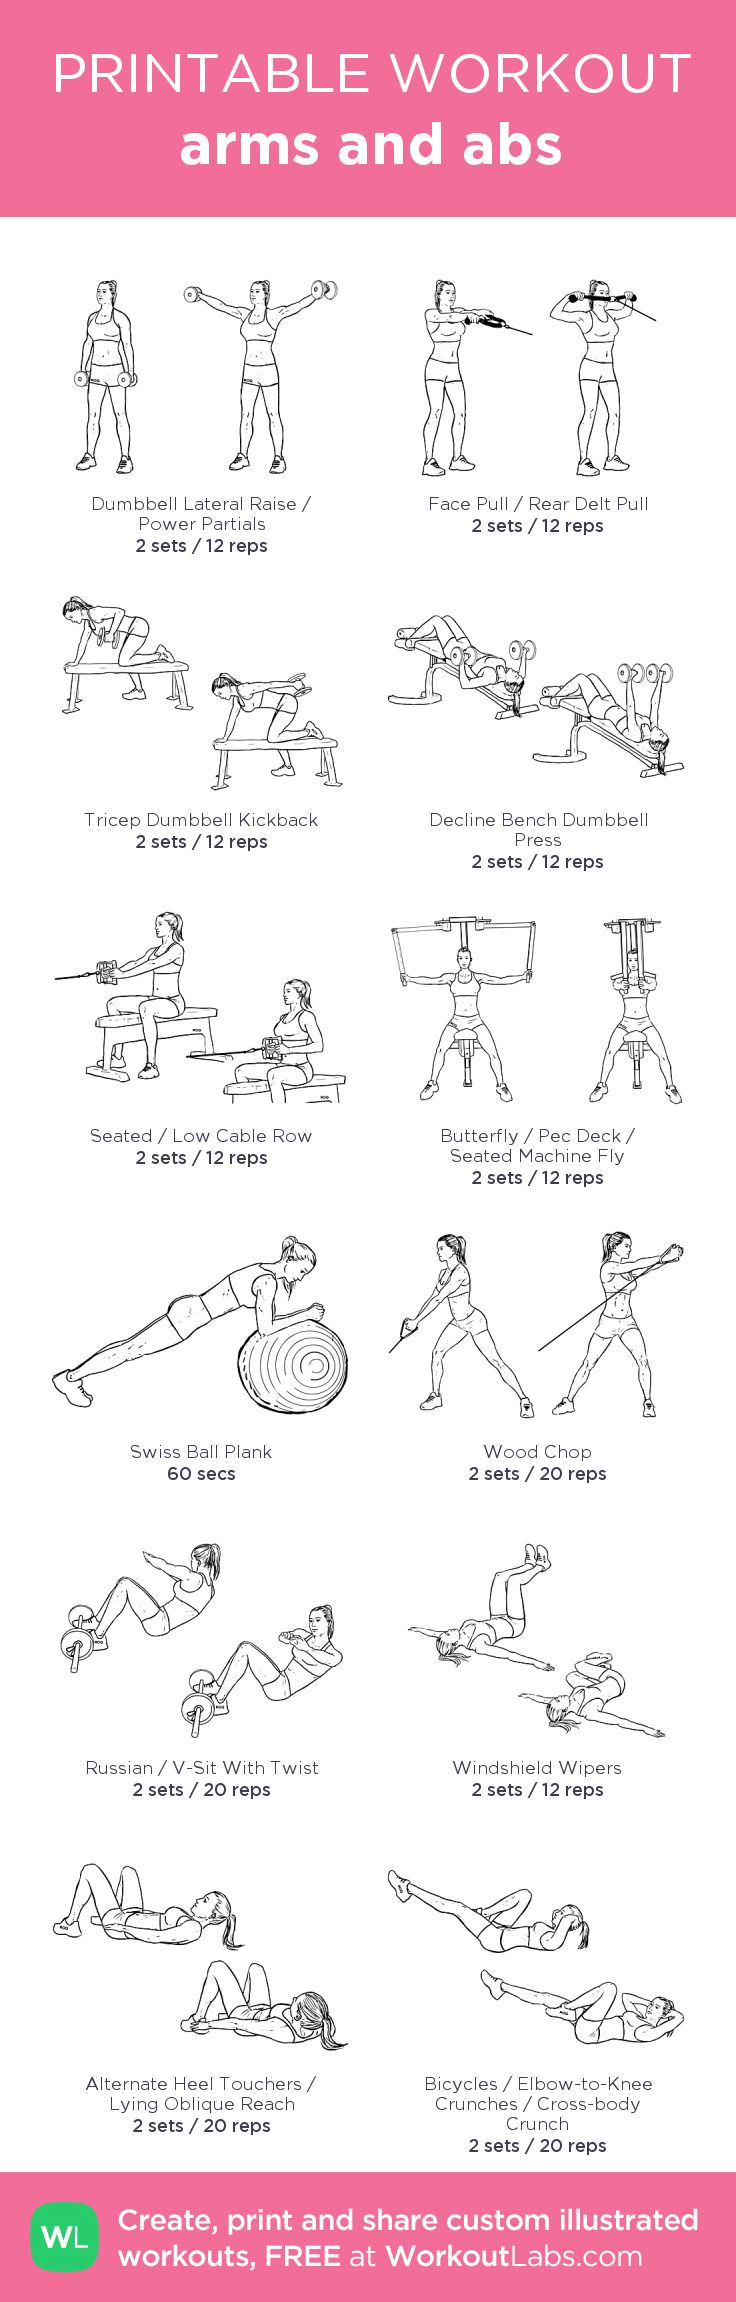 arms and abs:my visual workout created at WorkoutLabs.com • Click through to customize and download as a FREE PDF! #customworkout